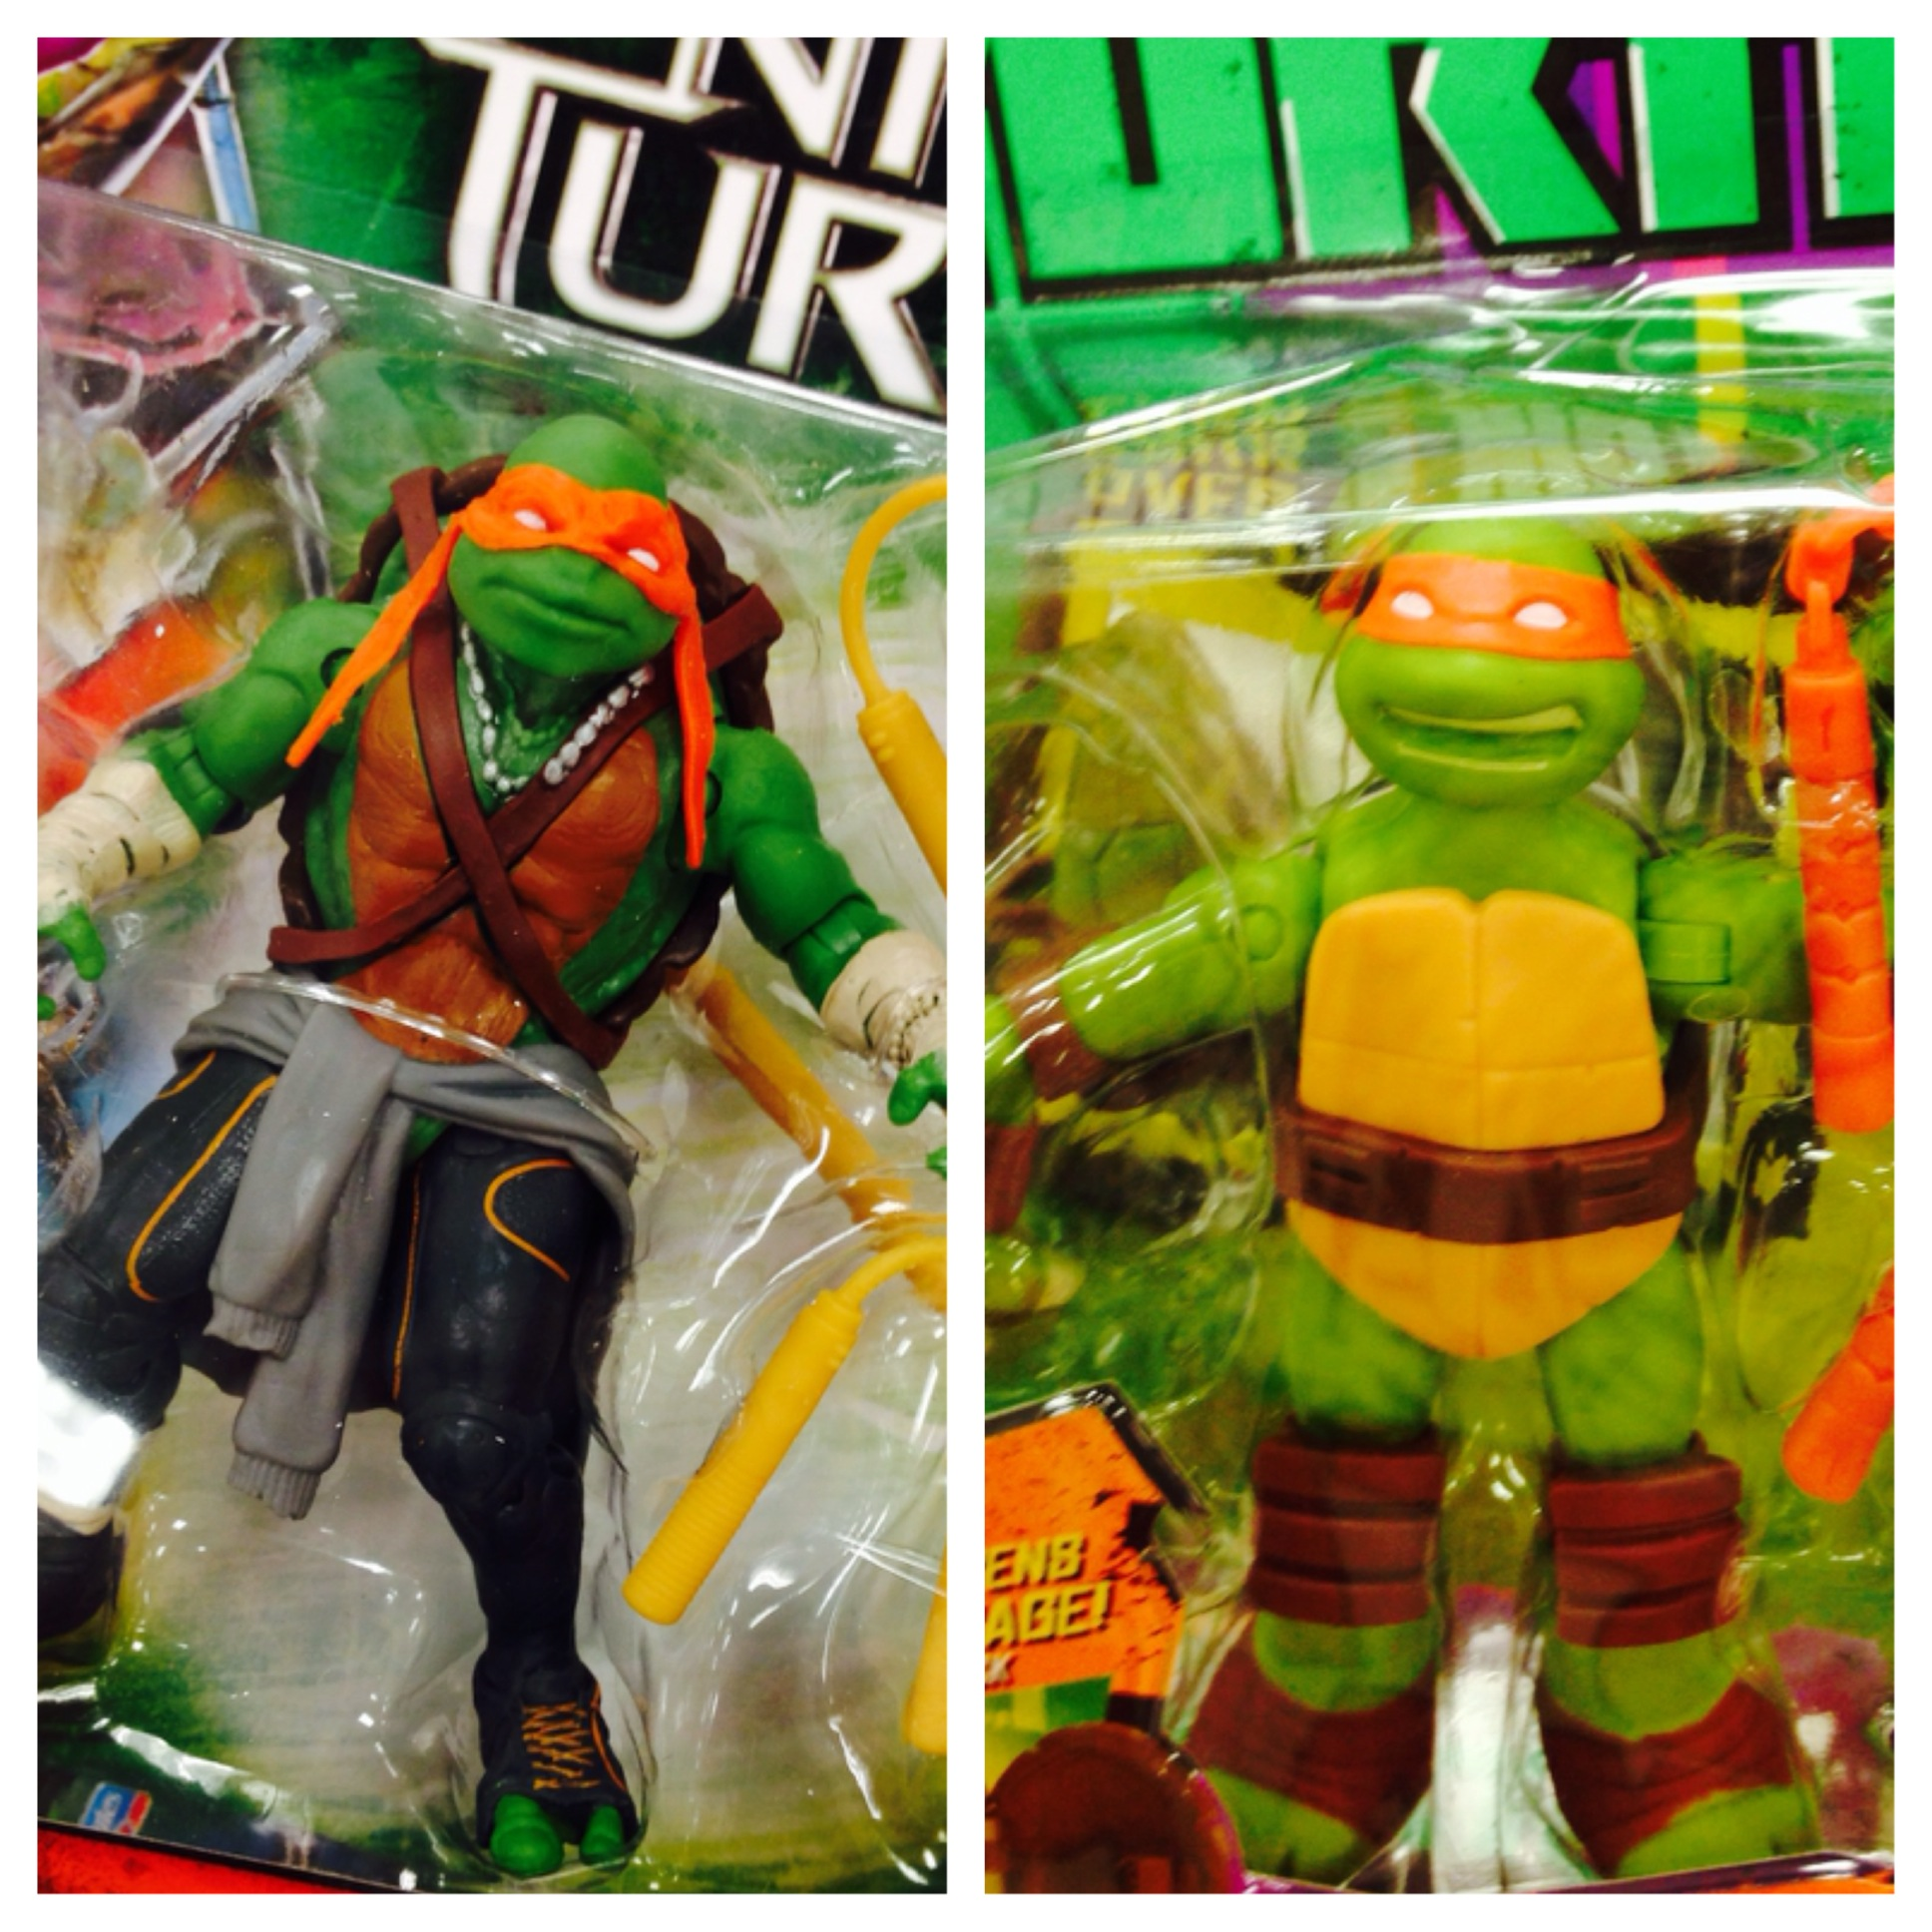 Michelangelo and his Dr. Rockso counterpart.